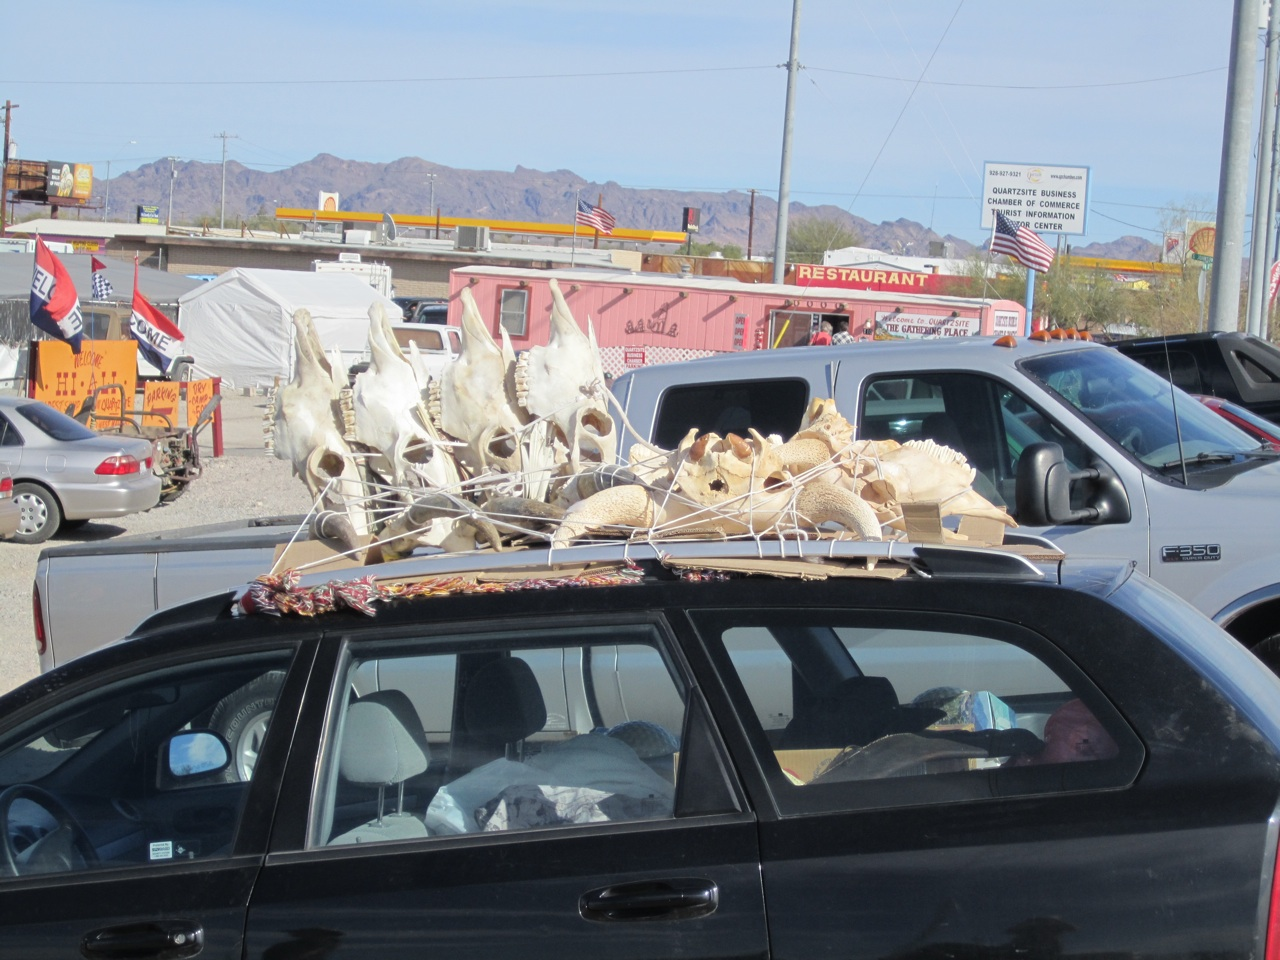 Skulls On Top Of A Car. Only Out West You Would See Something Like This. I Know This Is Not Something I'd Like To See Driving Down The Road.